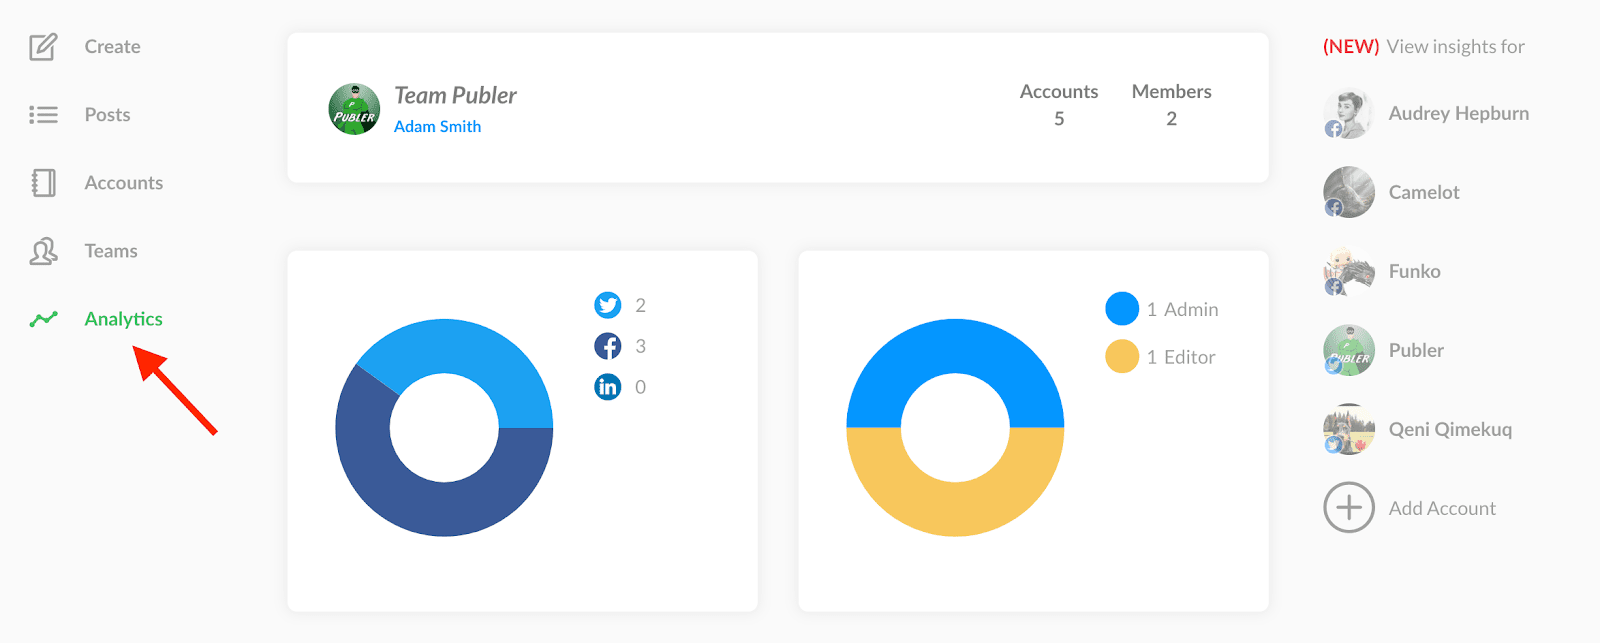 Publer analytics